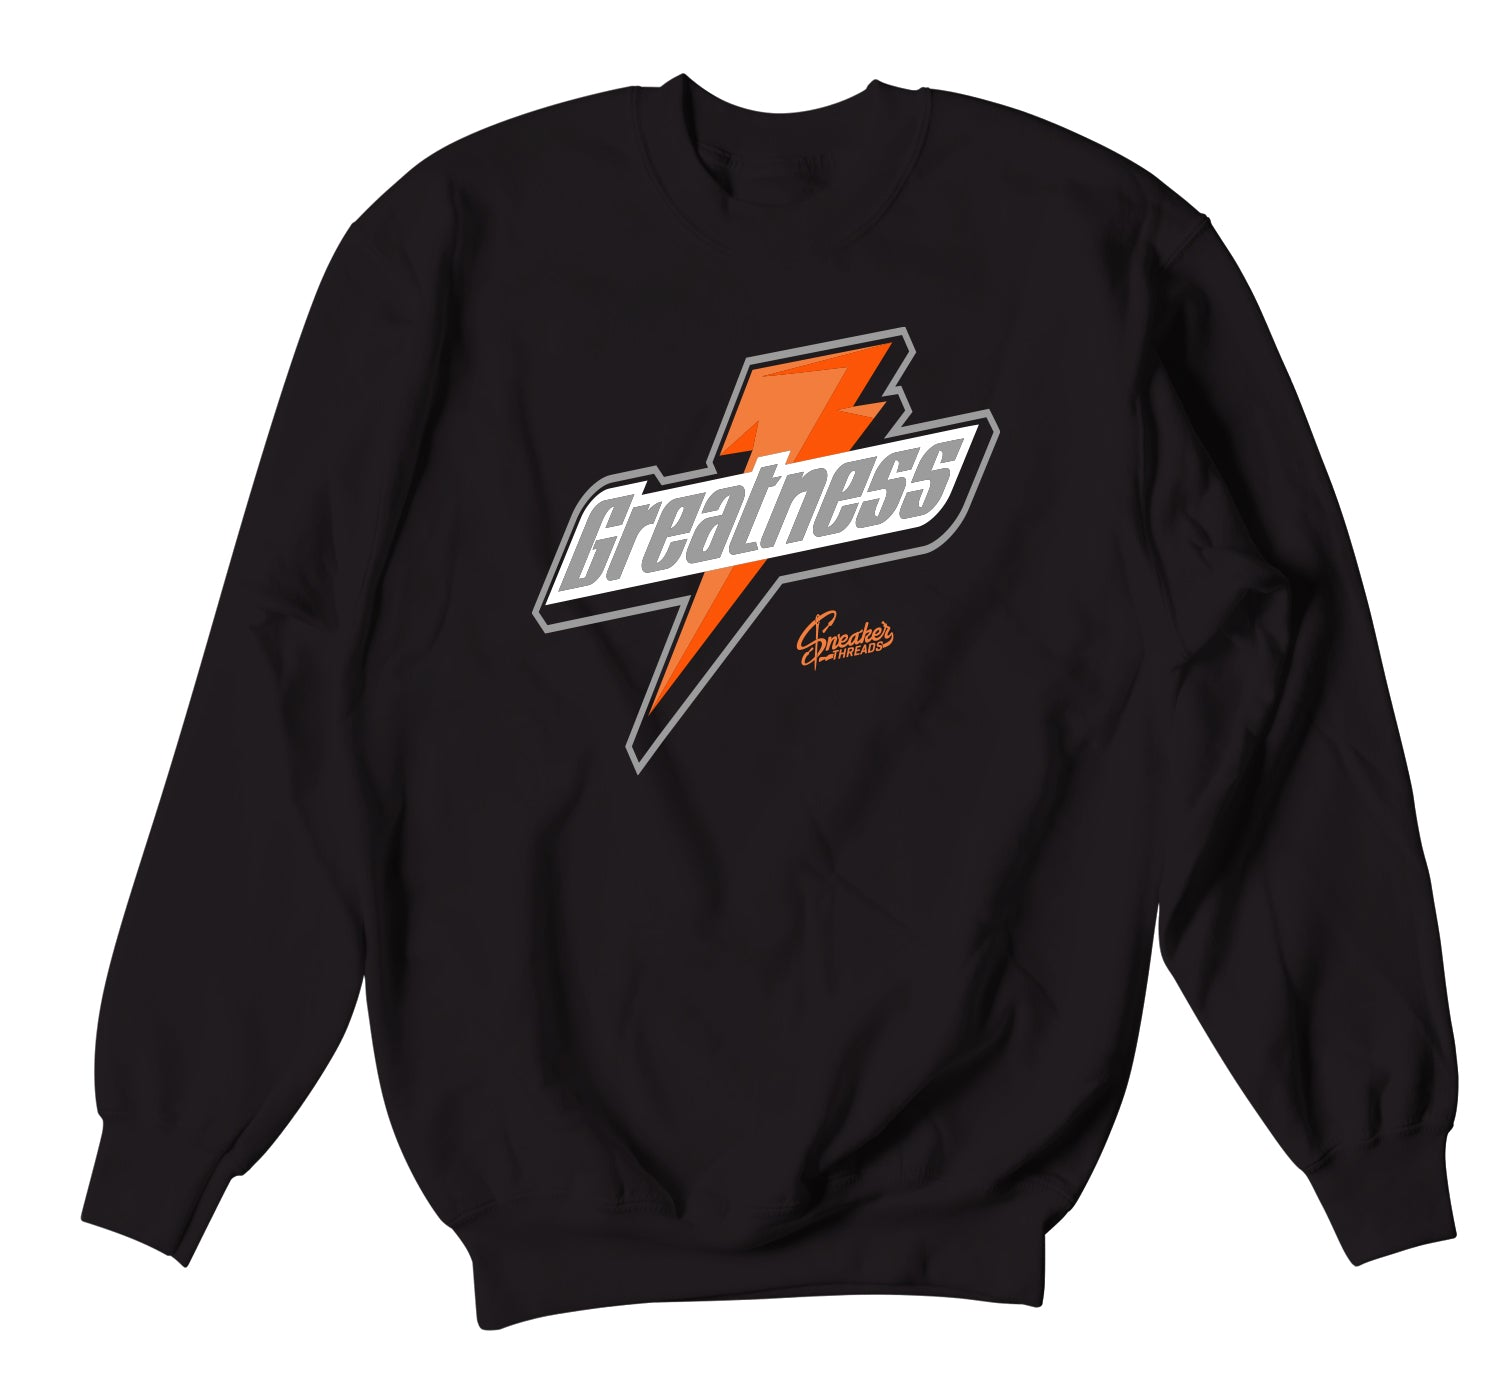 Jordan Starfish Sweater - Greatness - Black